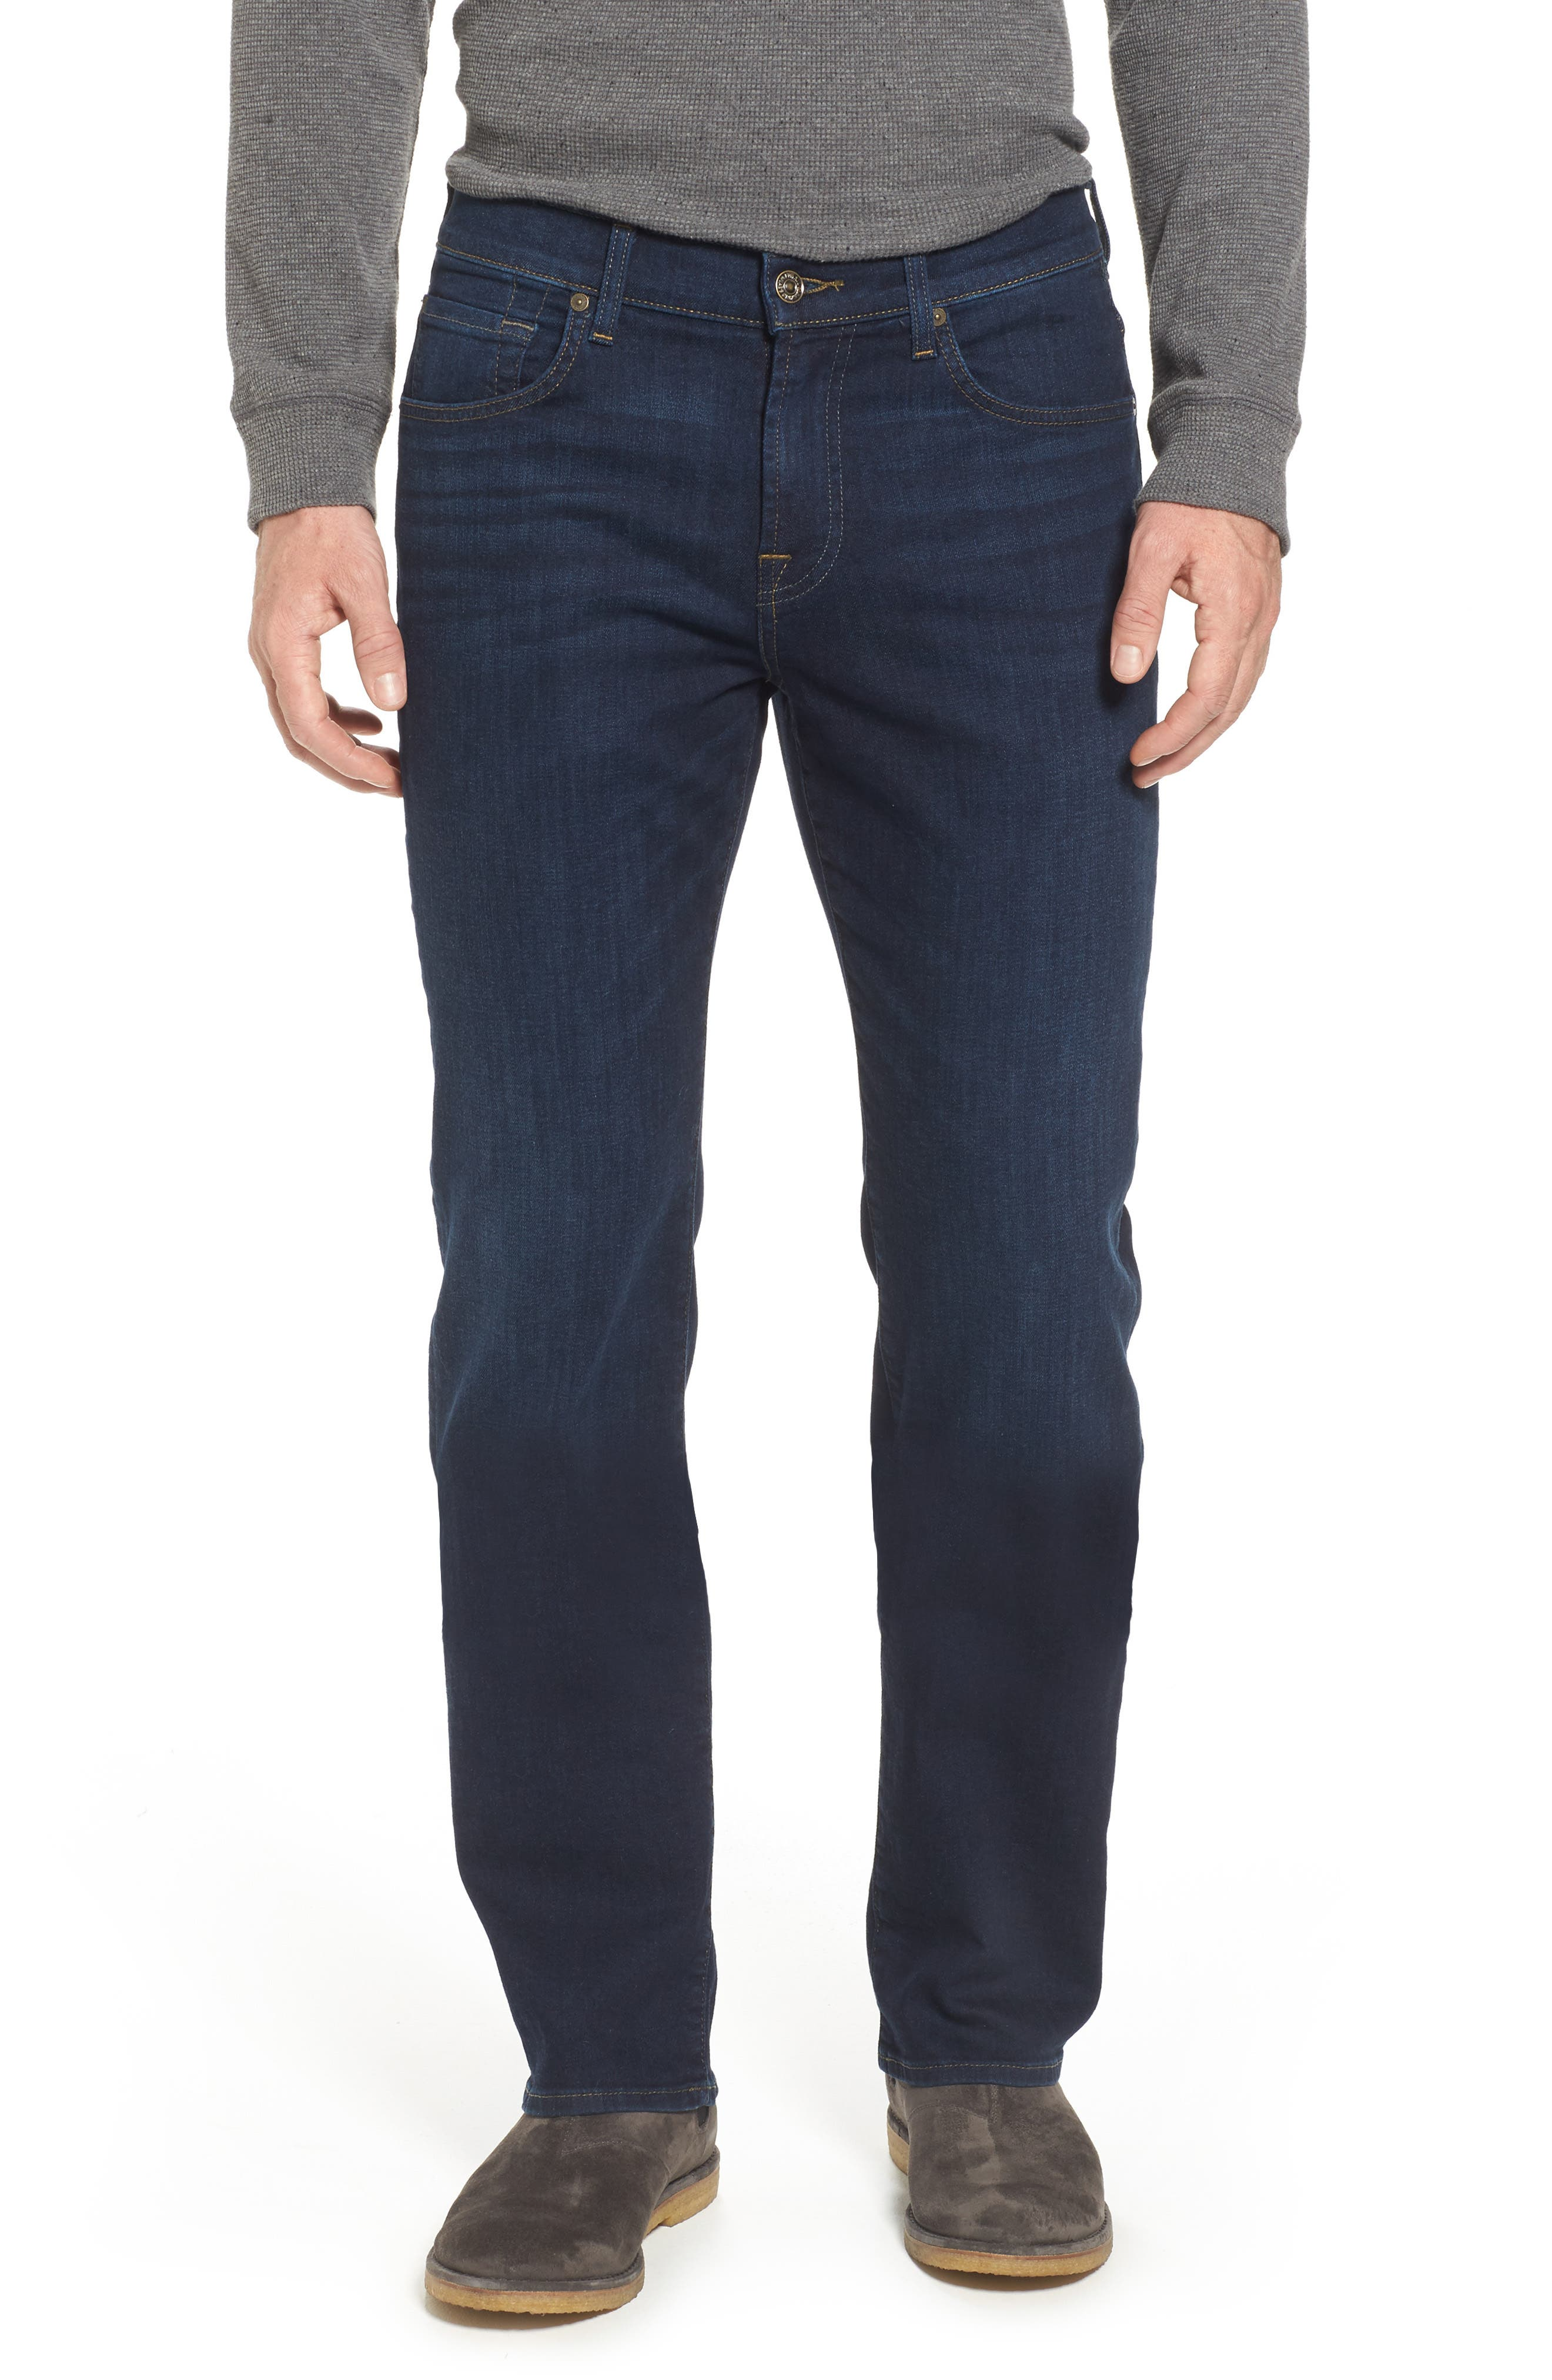 Austyn Relaxed Fit Jeans,                             Main thumbnail 1, color,                             After Hours